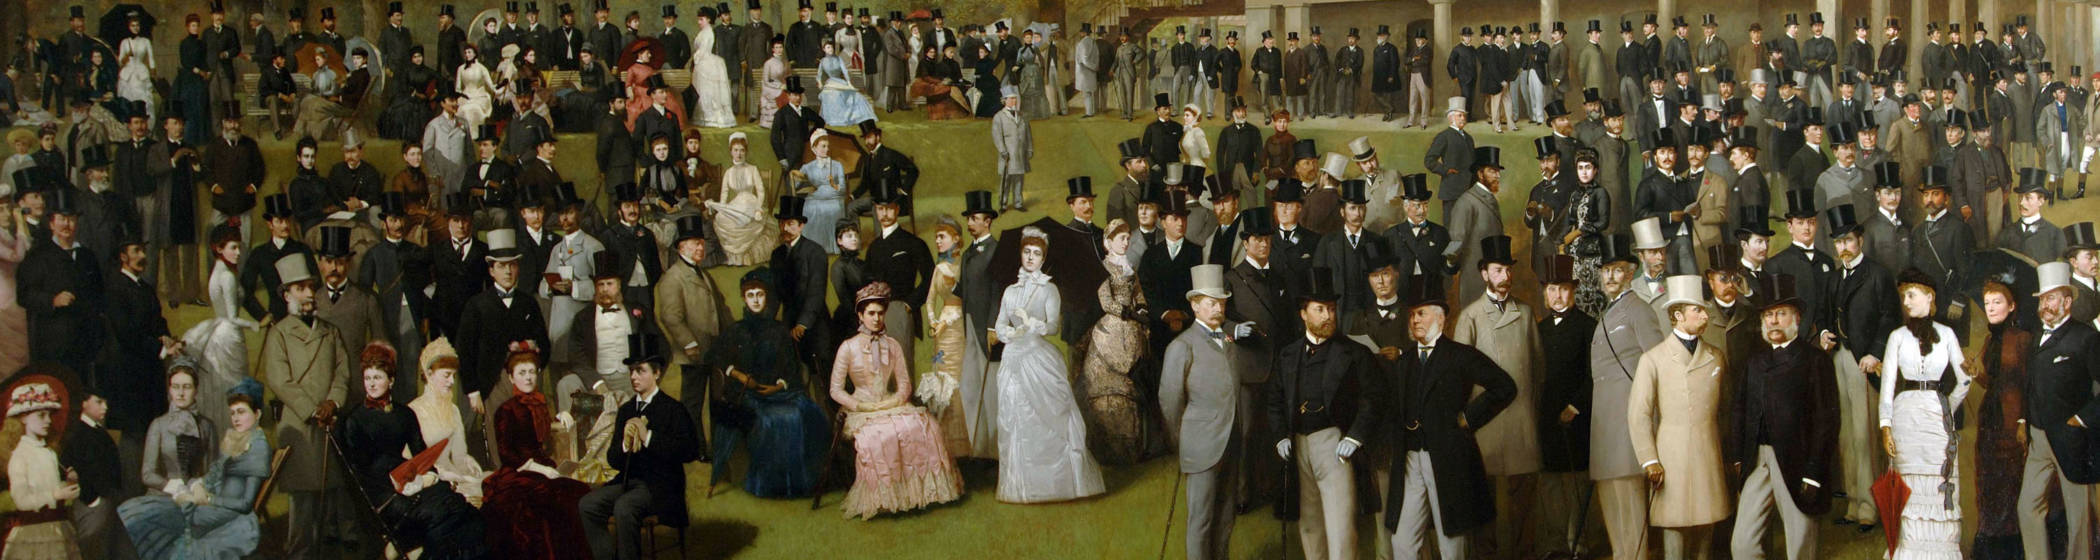 An oil painting of People on the lawn at Godowood including various Rothschilds.